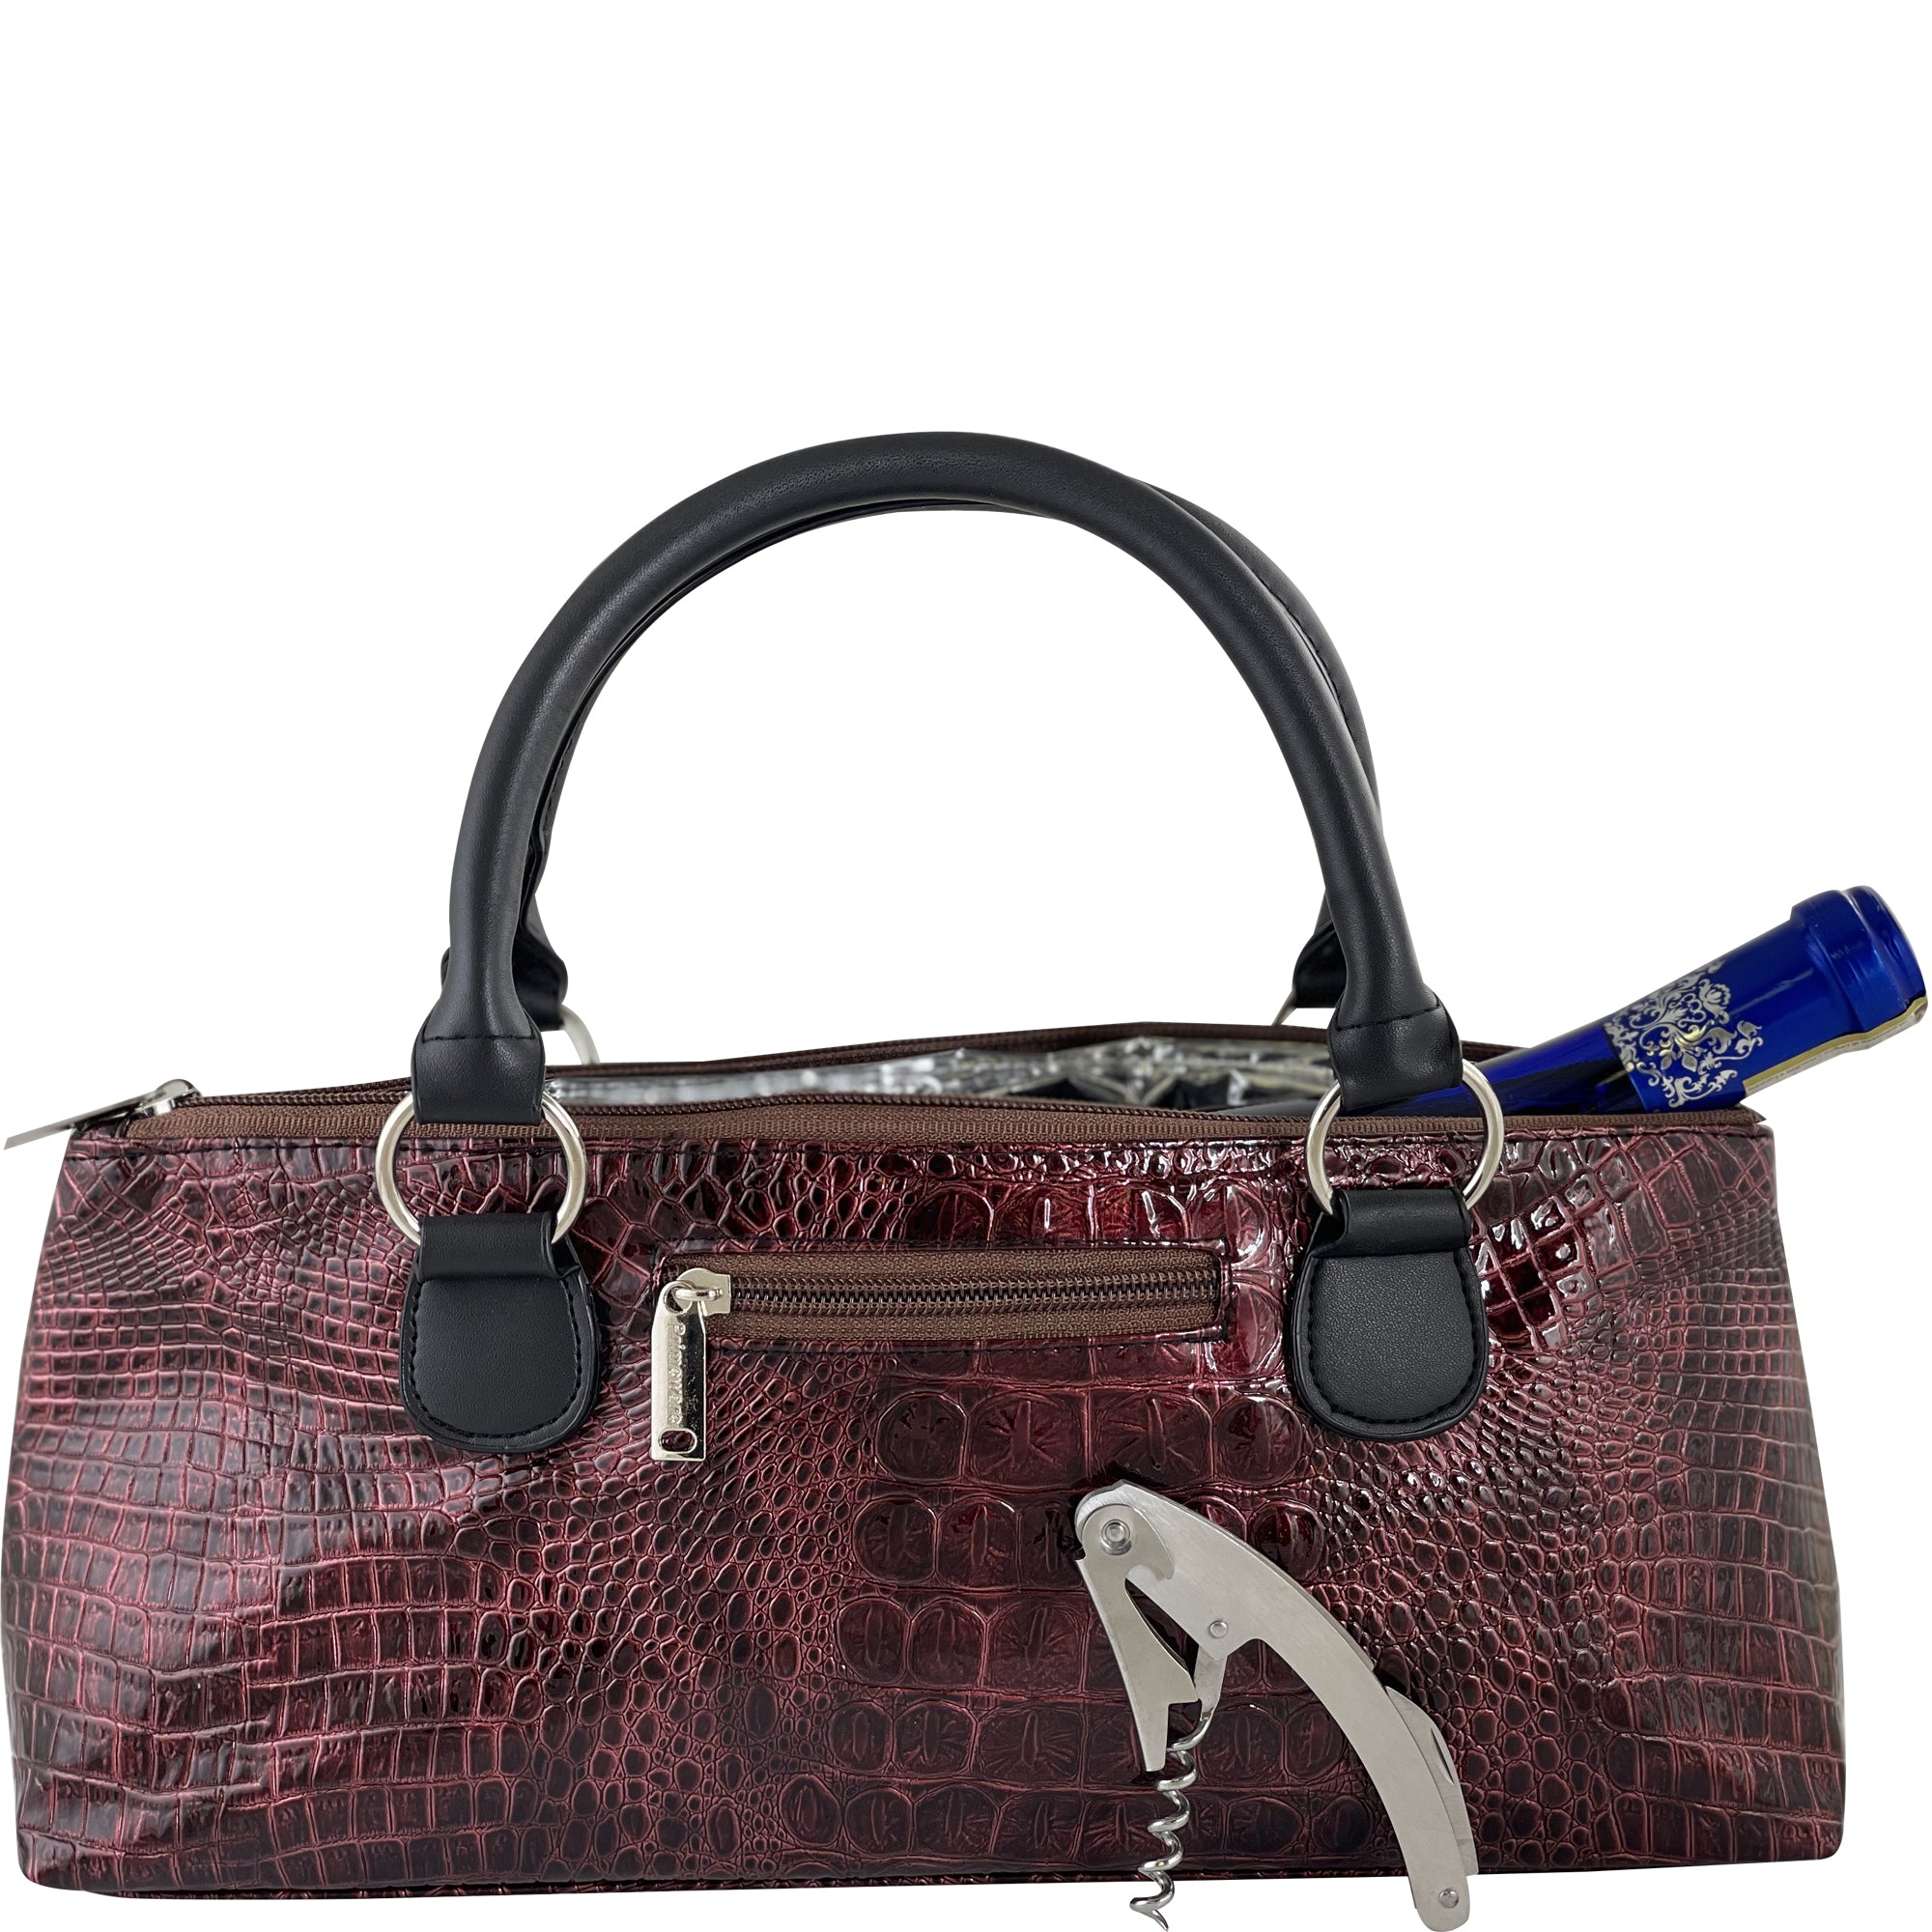 Wine Clutch Croc Design - primewareinc